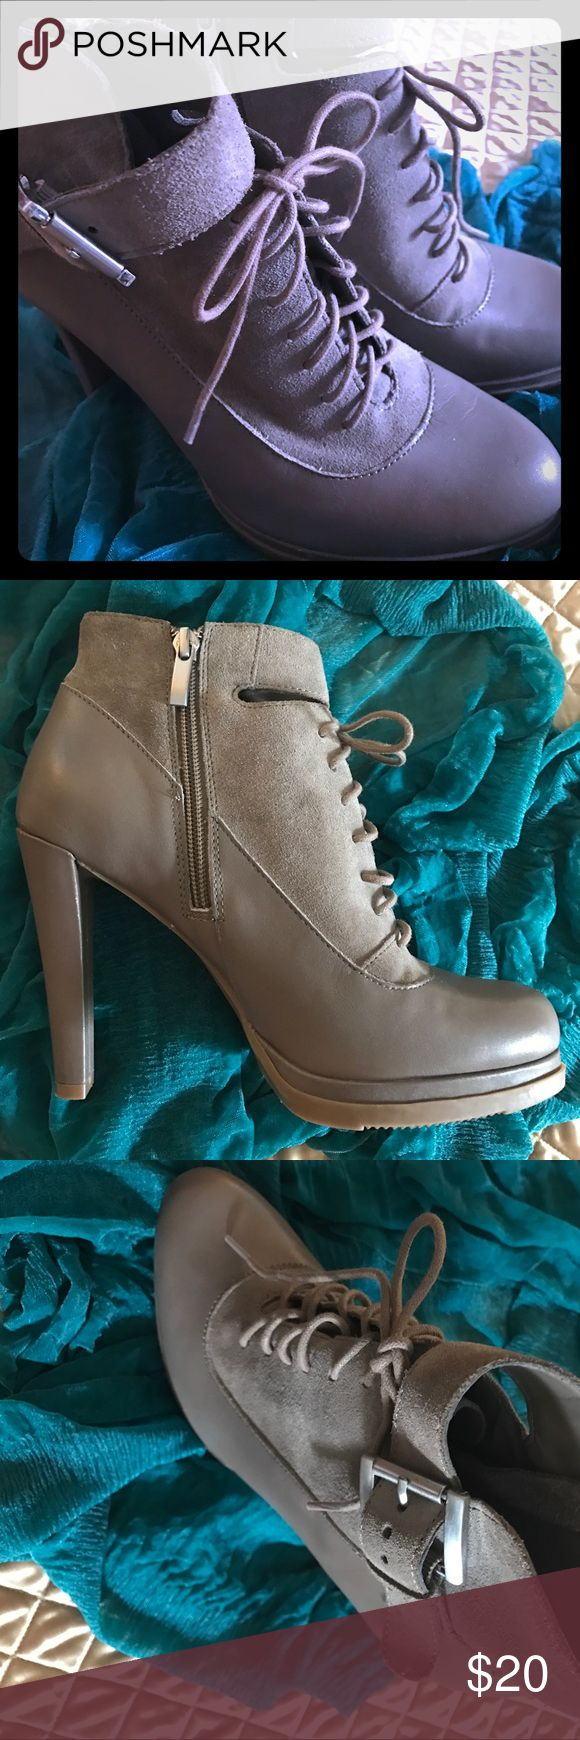 FRENCH CONNECTION LEATHER BOOTIES NWOT FRENCH CONNECTION TAUPE HEELS WITH LACES AND SEPARATE BUCKLE STRAP. GORGEOUS 👡 French Connection Shoes Heels